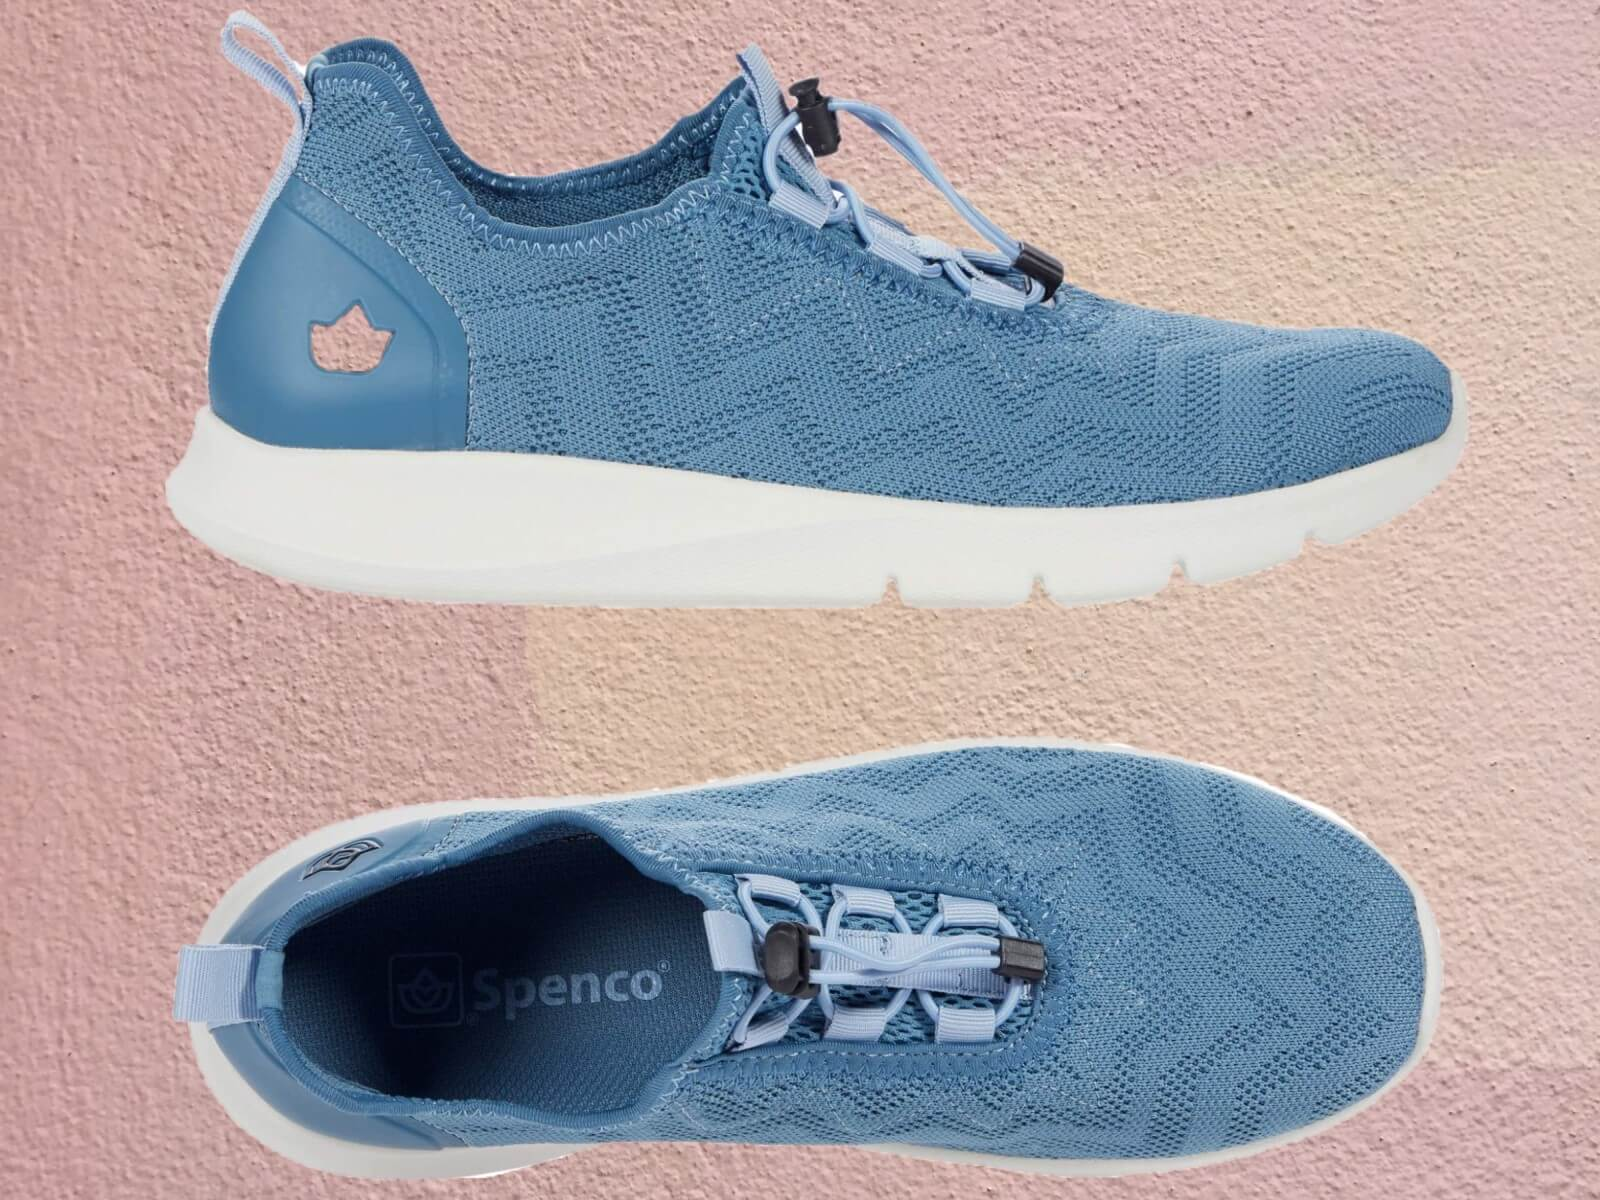 Spenco chelsea sneakers in light blue with both overhead and profile details